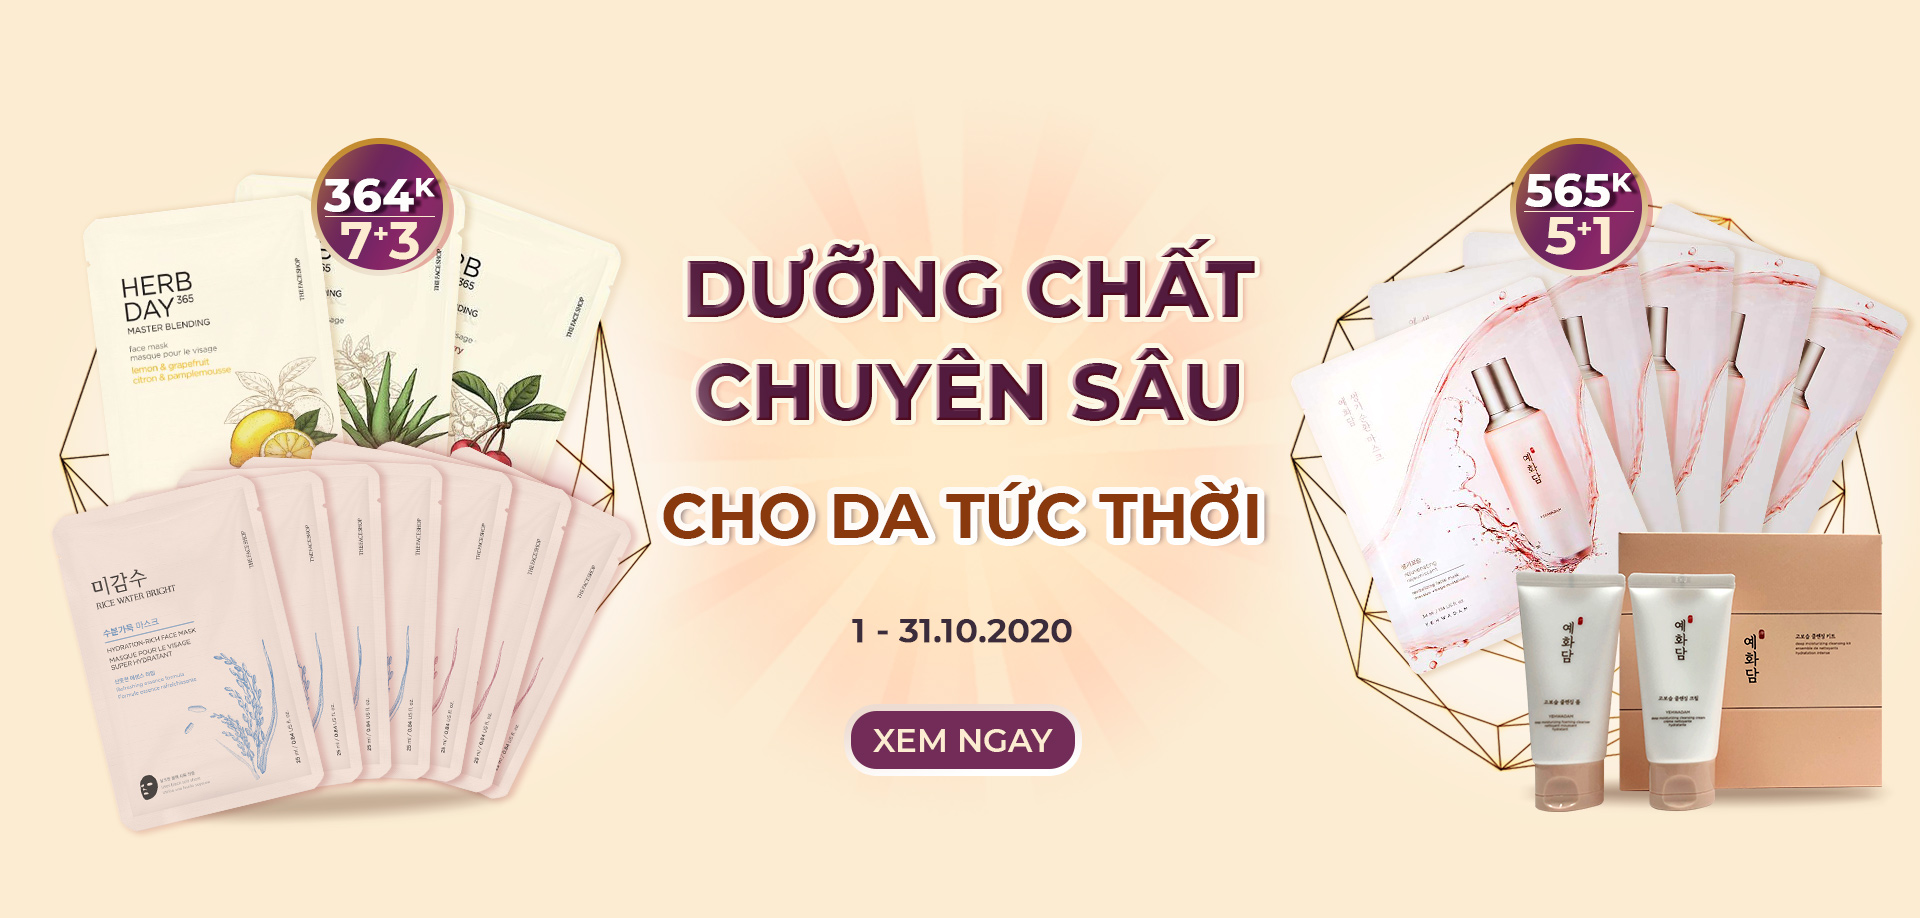 https://thefaceshop.com.vn/collections/khuyen-mai-hot?itm_source=homepage&itm_medium=slider_banner&itm_campaign=Thang_10&itm_content=banner_desktop&itm_term=